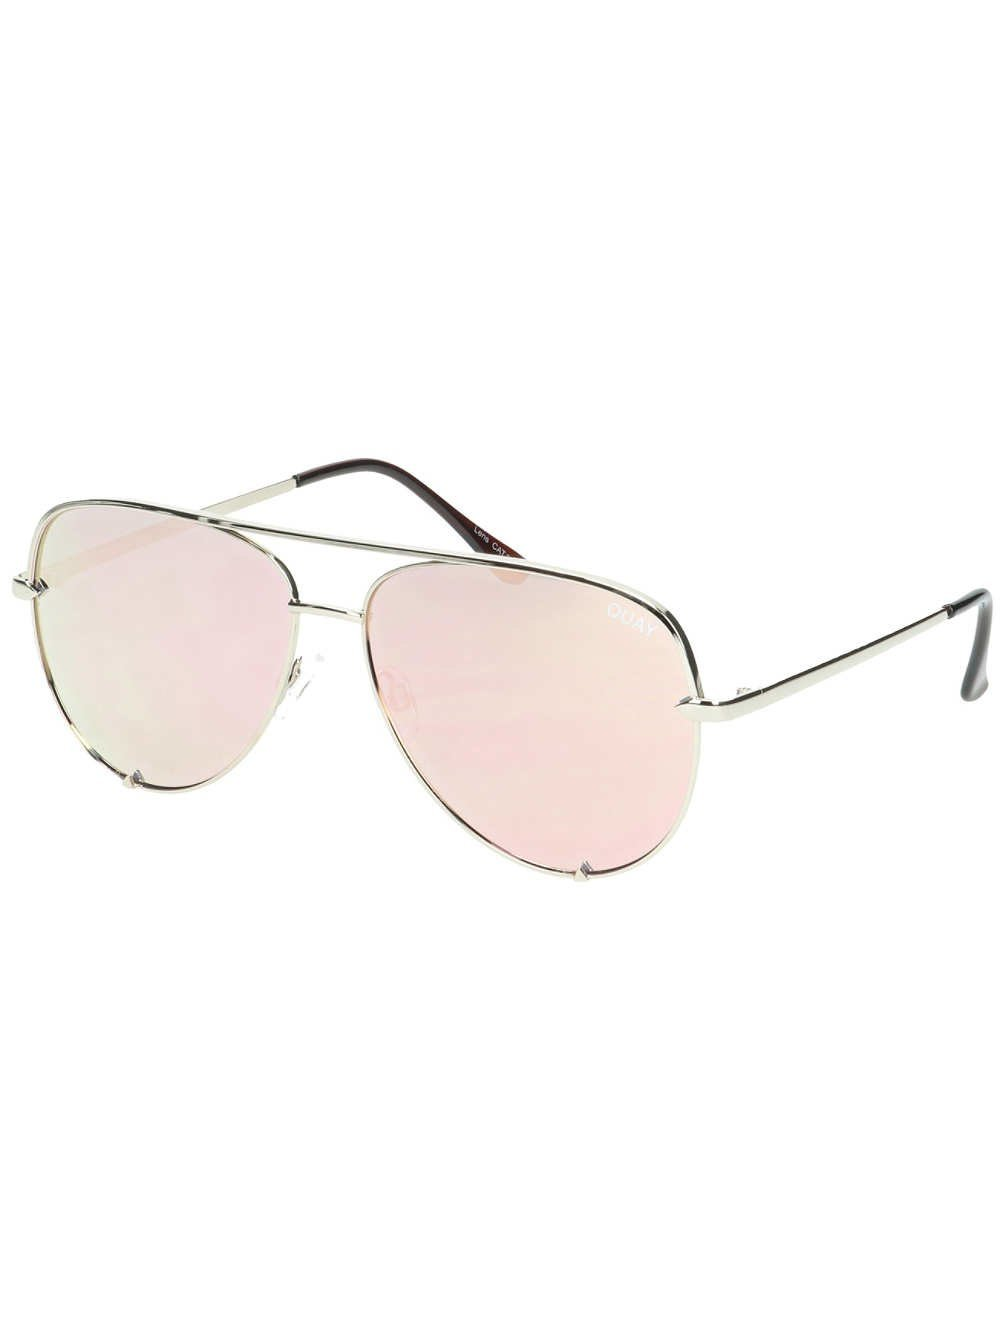 Quay Australia HIGH KEY Men's and Women's Sunglasses Classic Oversized Aviator – Gold